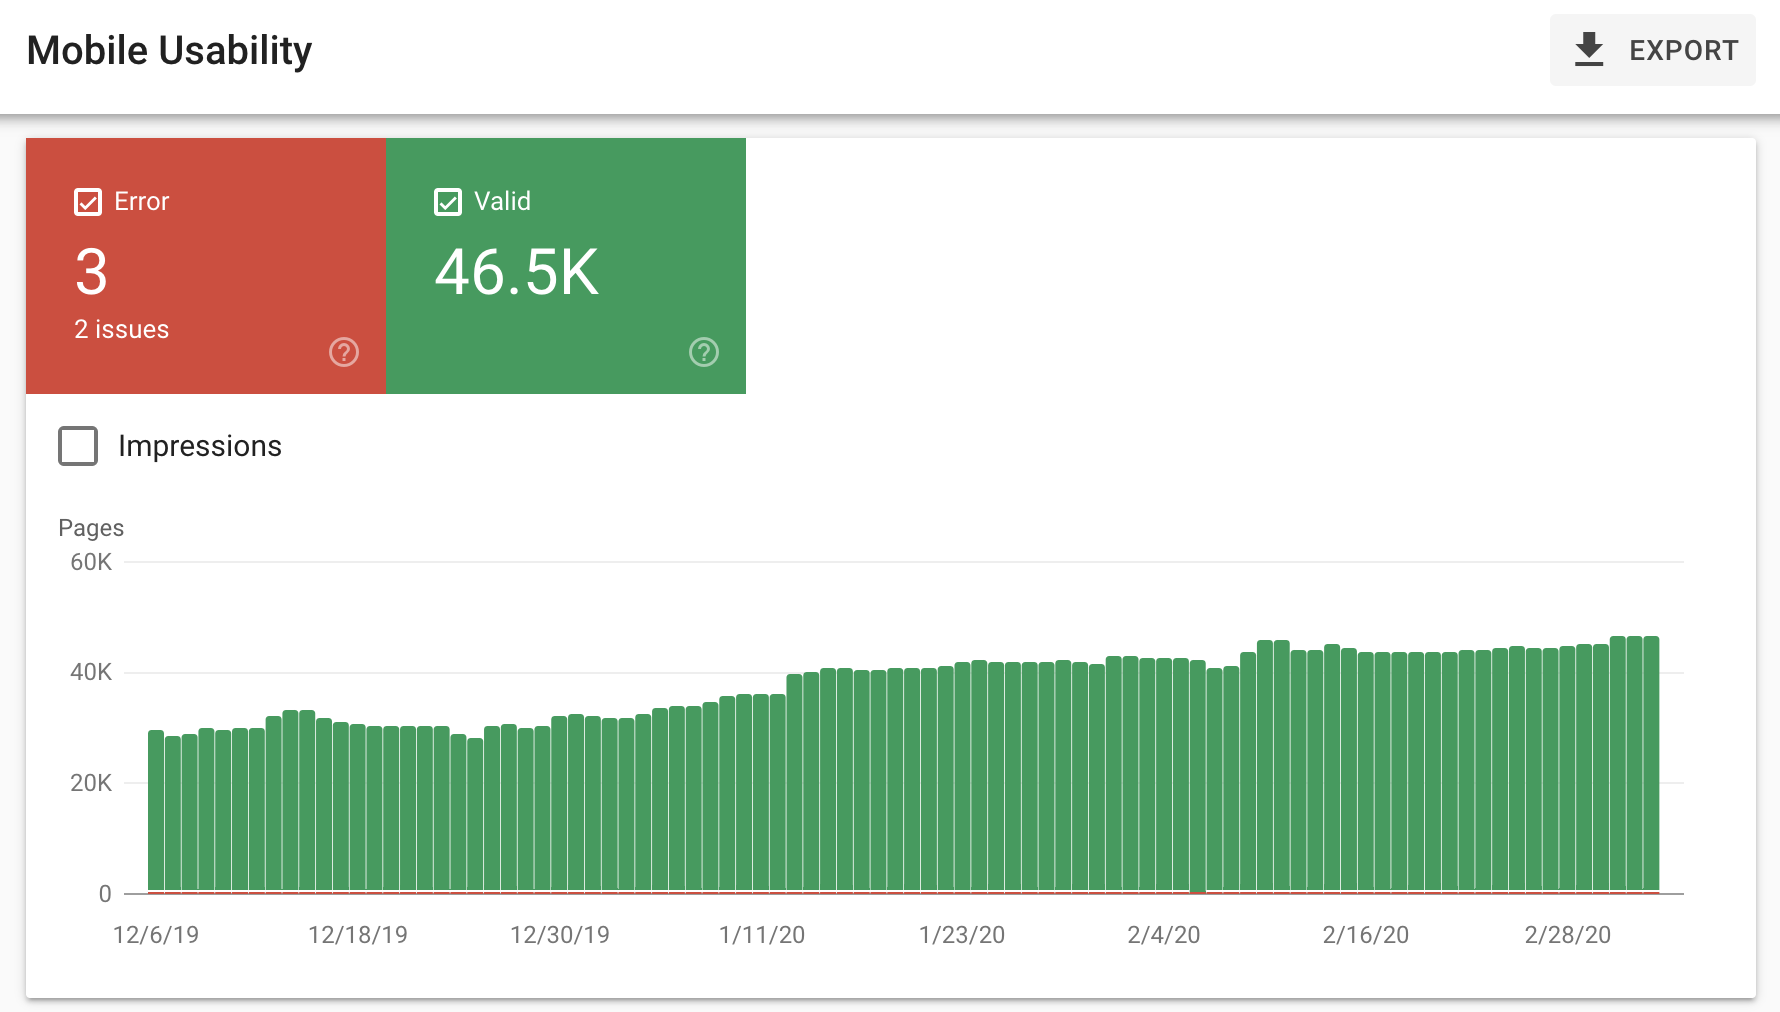 The mobile usability report in Search Console